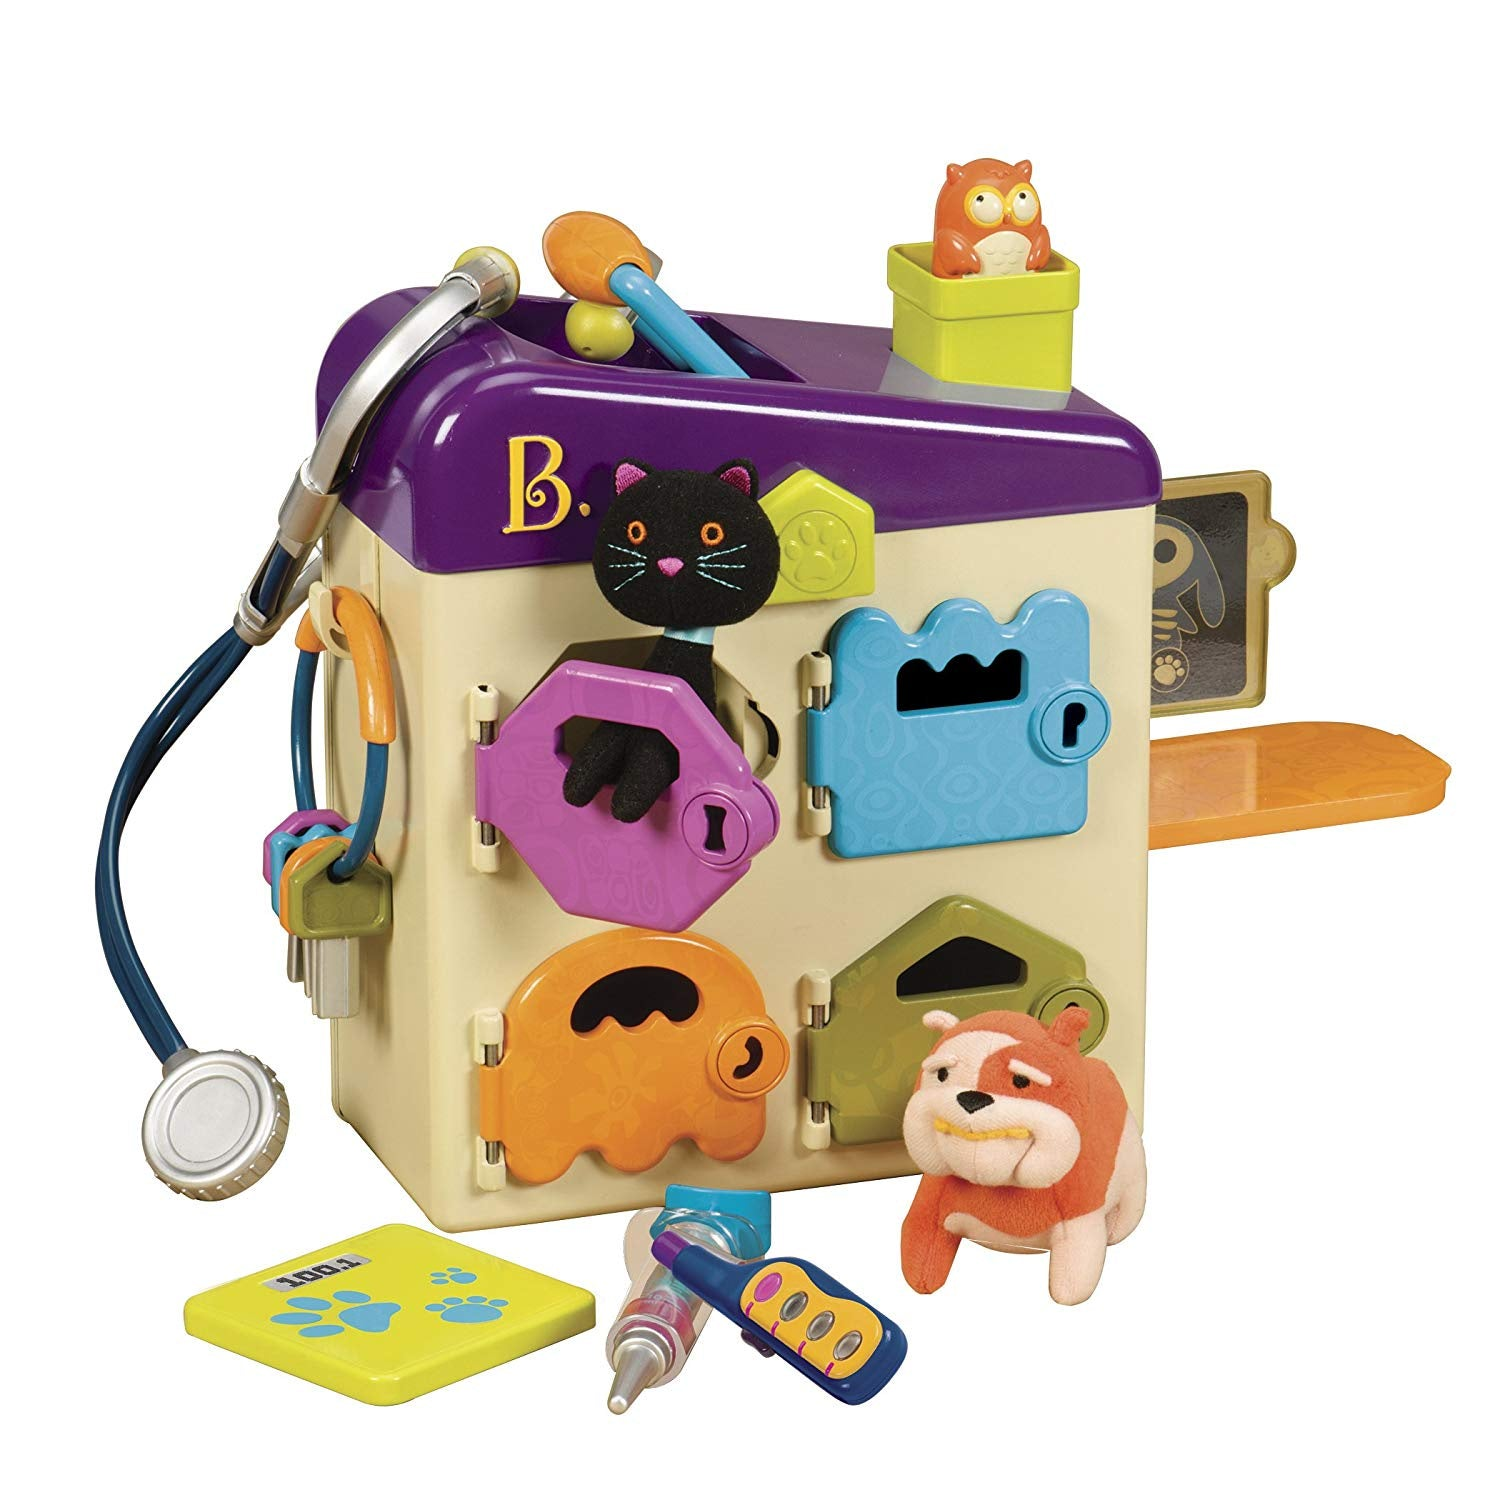 B. Pet Vet Playset